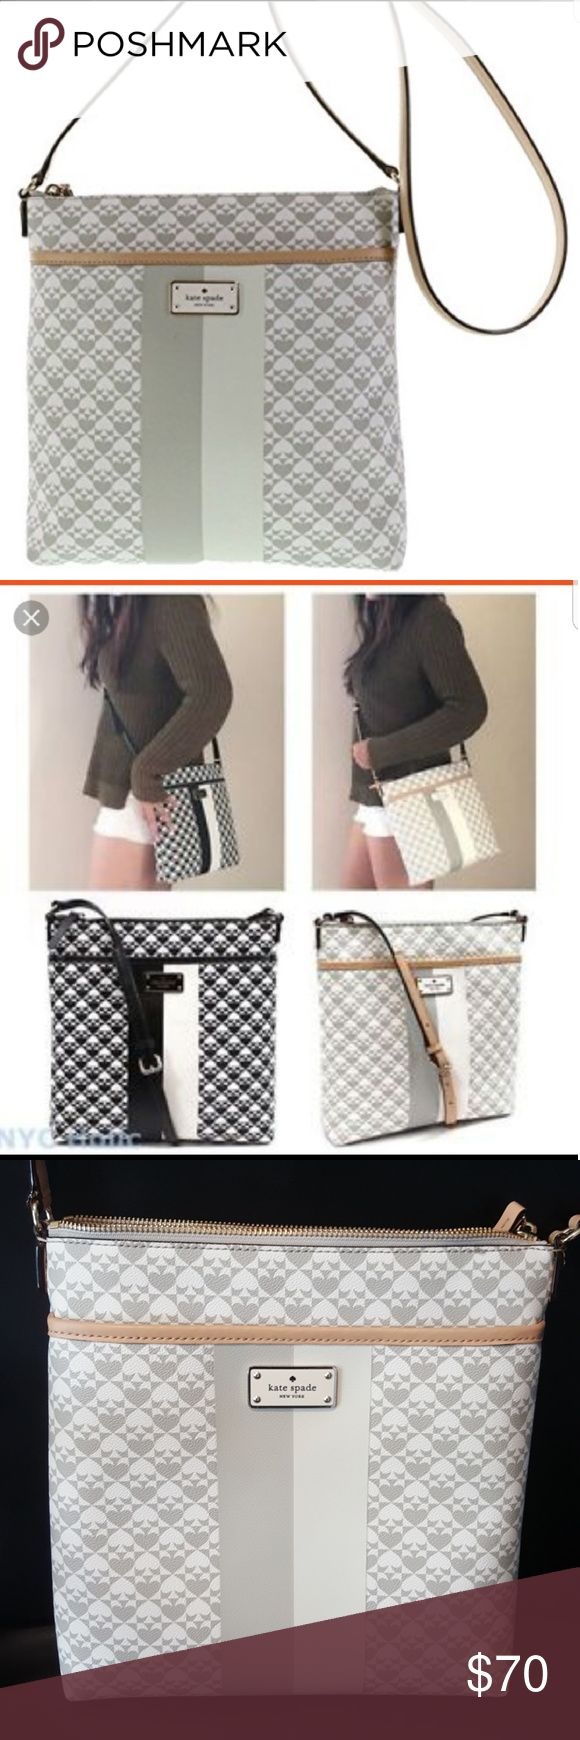 "KATE SPADE ""Keisha"" Crossbody Purse This crossbody purse is by KATE SPADE, Style is Keisha. Measure approx 11"" x 11"". Gray and white. Excellent condition, used 1 time. My loss, your gain! kate spade Bags Crossbody Bags"